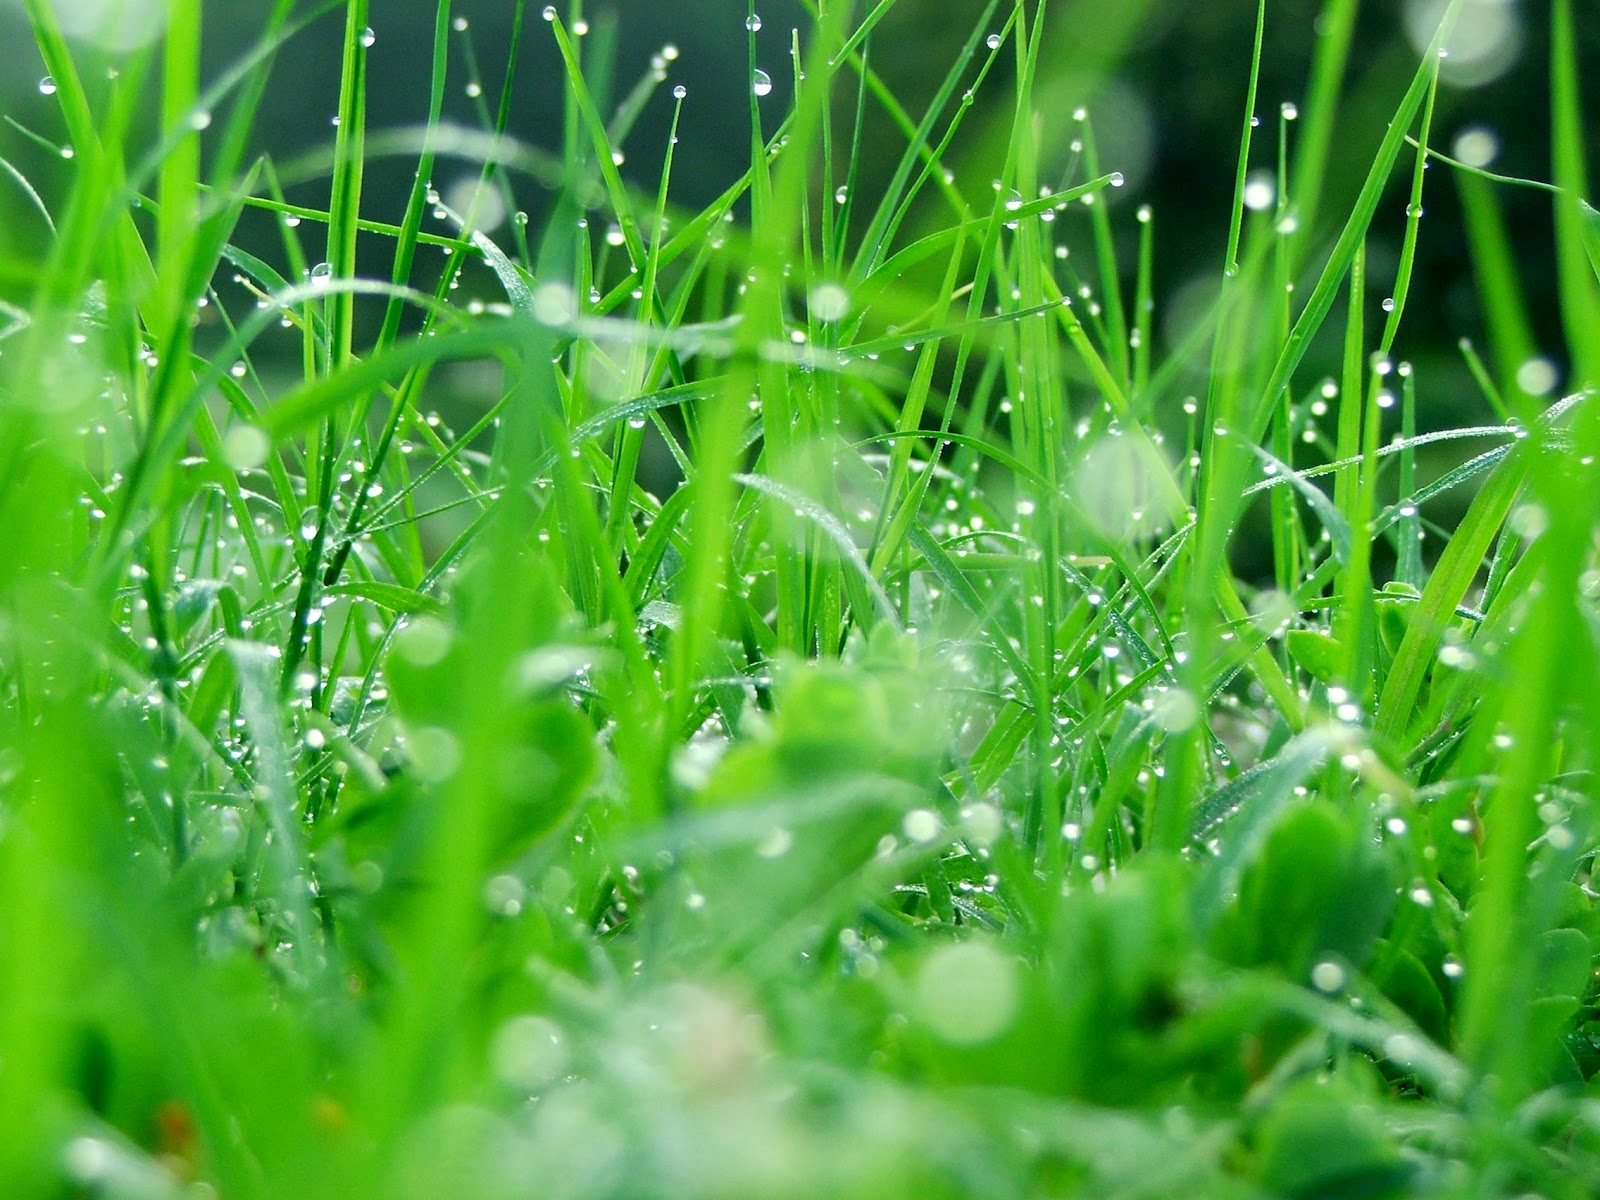 Natural Rain Wallpaper